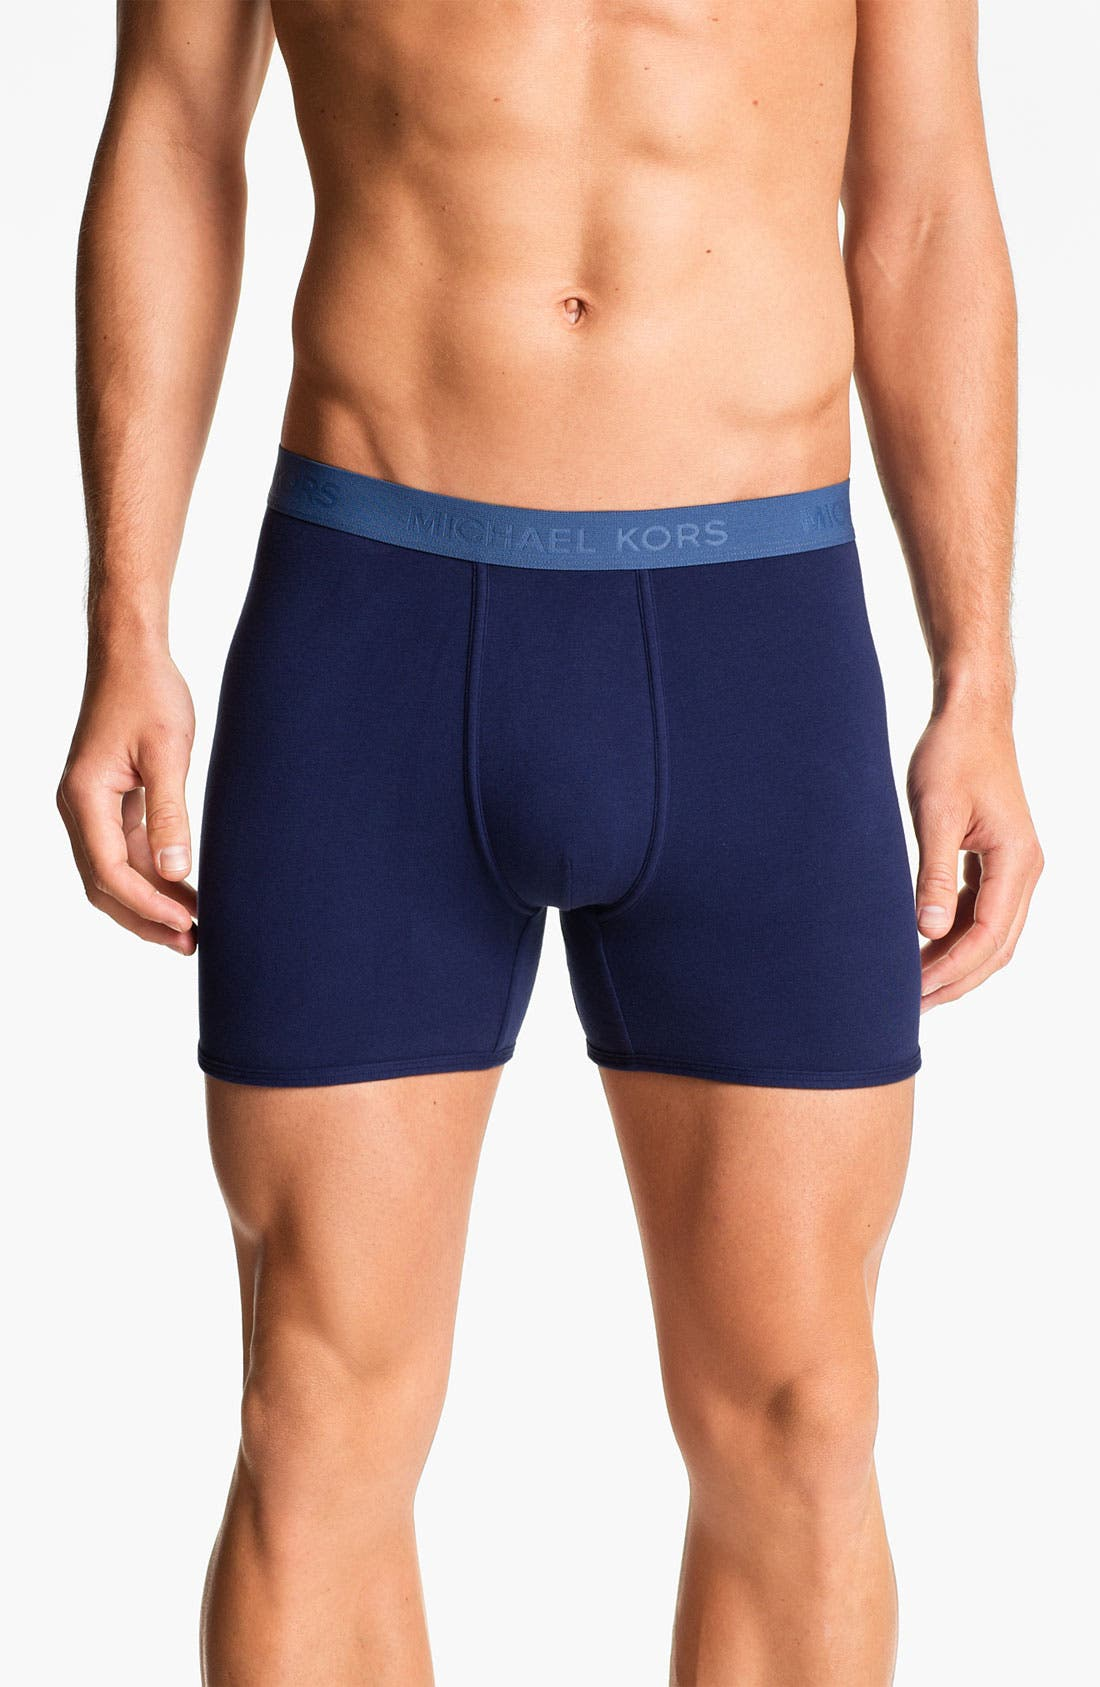 Alternate Image 1 Selected - Michael Kors 'Free Fit' Boxer Briefs